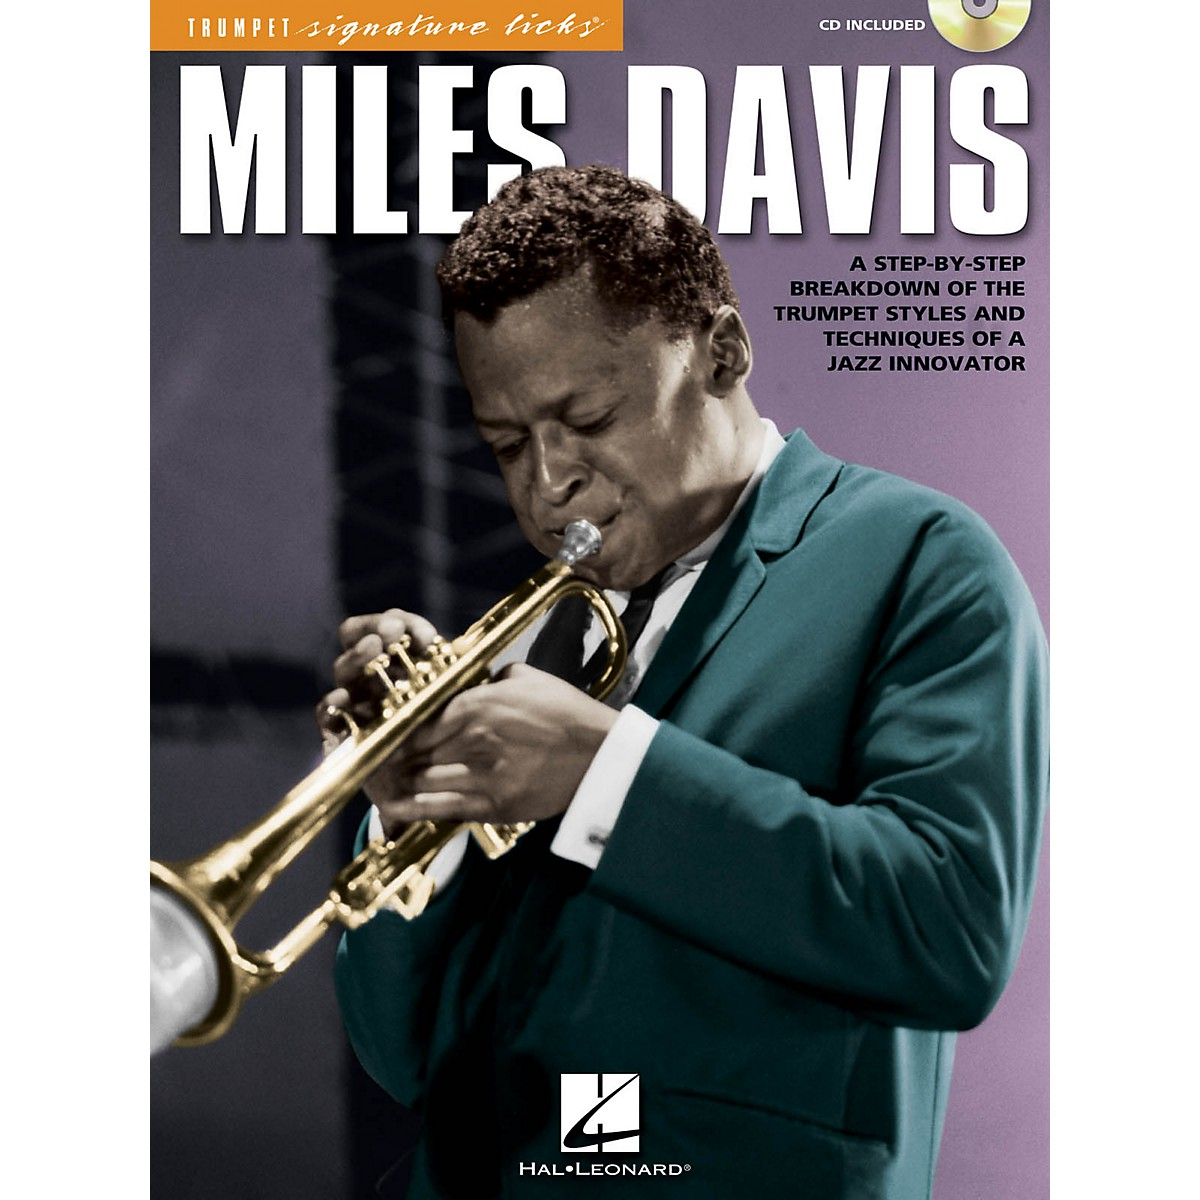 Hal Leonard Miles Davis Signature Licks Trumpet Series Softcover with CD Performed by Miles Davis